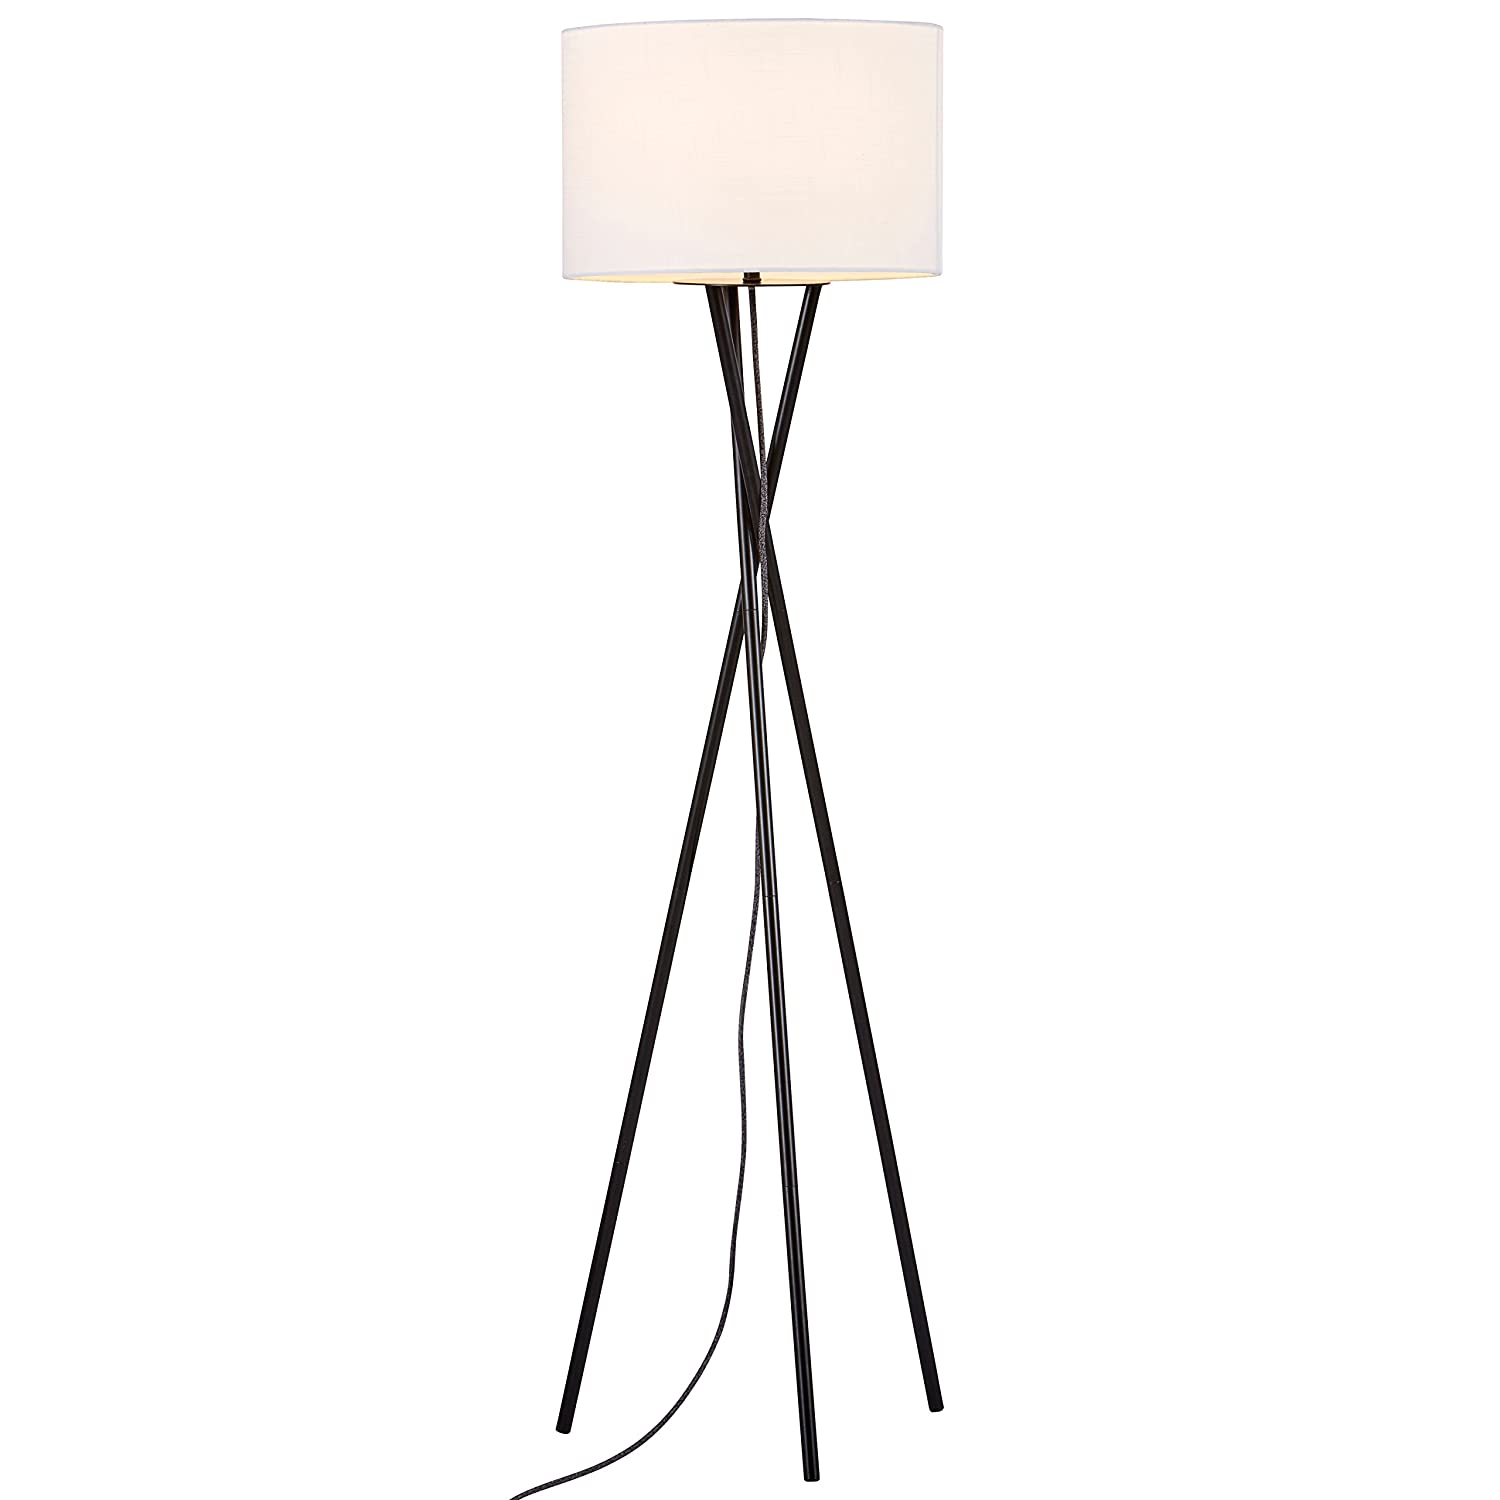 Floor lamps amazon lighting ceiling fans lamps shades rivet black metal tripod floor lamp geotapseo Images